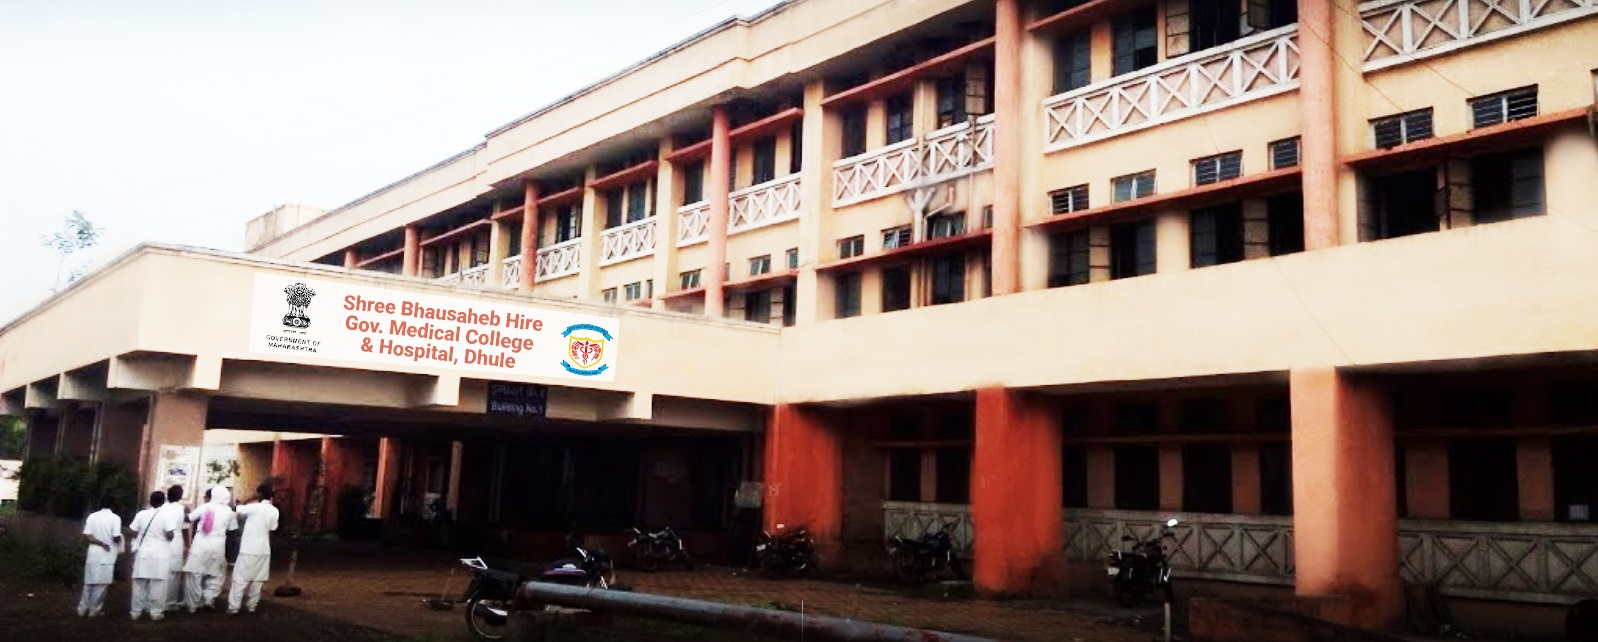 Shri Bhausaheb Hire Government Medical College, Dhule Image